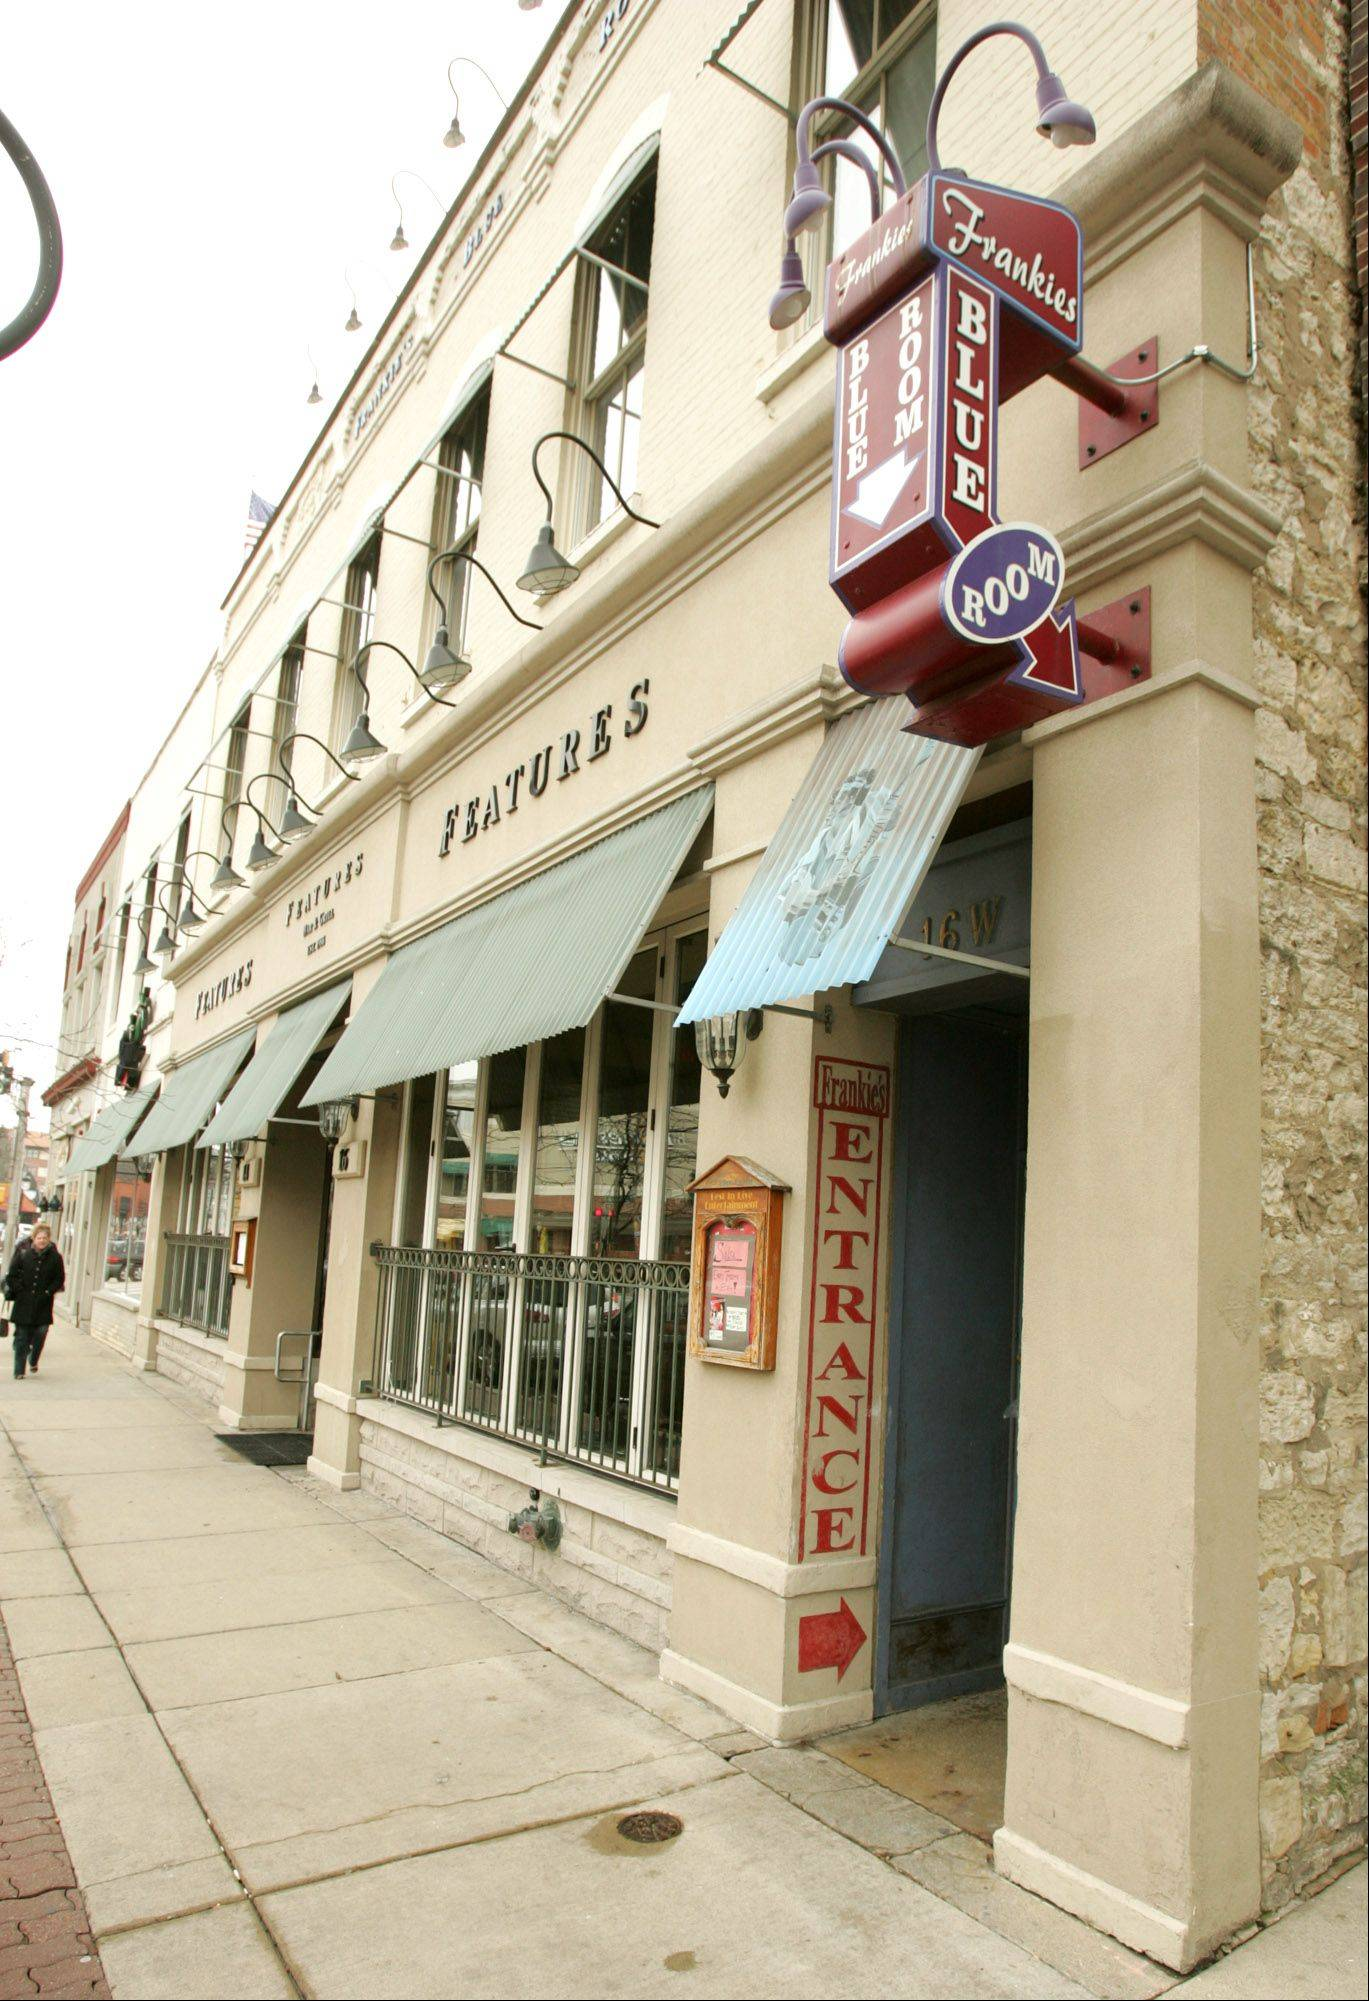 A Lemont man who was stabbed at Frankies Blue Room has settled a lawsuit against the establishment at 16 W. Chicago Ave. in downtown Naperville.